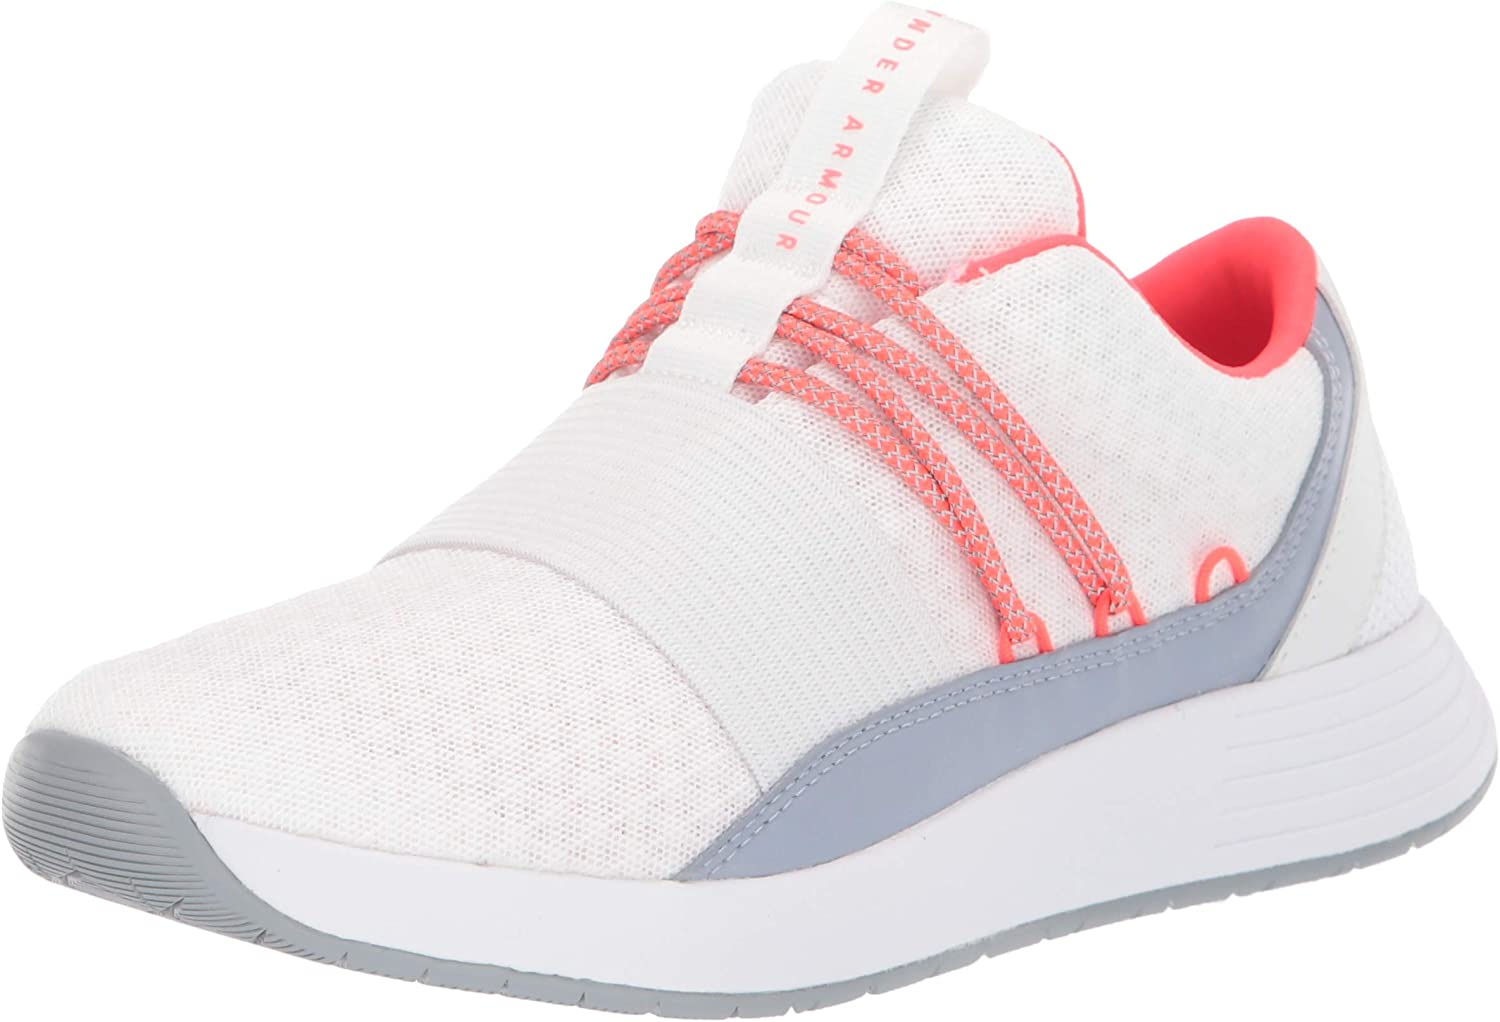 Under Armour Women's Breathe Lace Sneaker